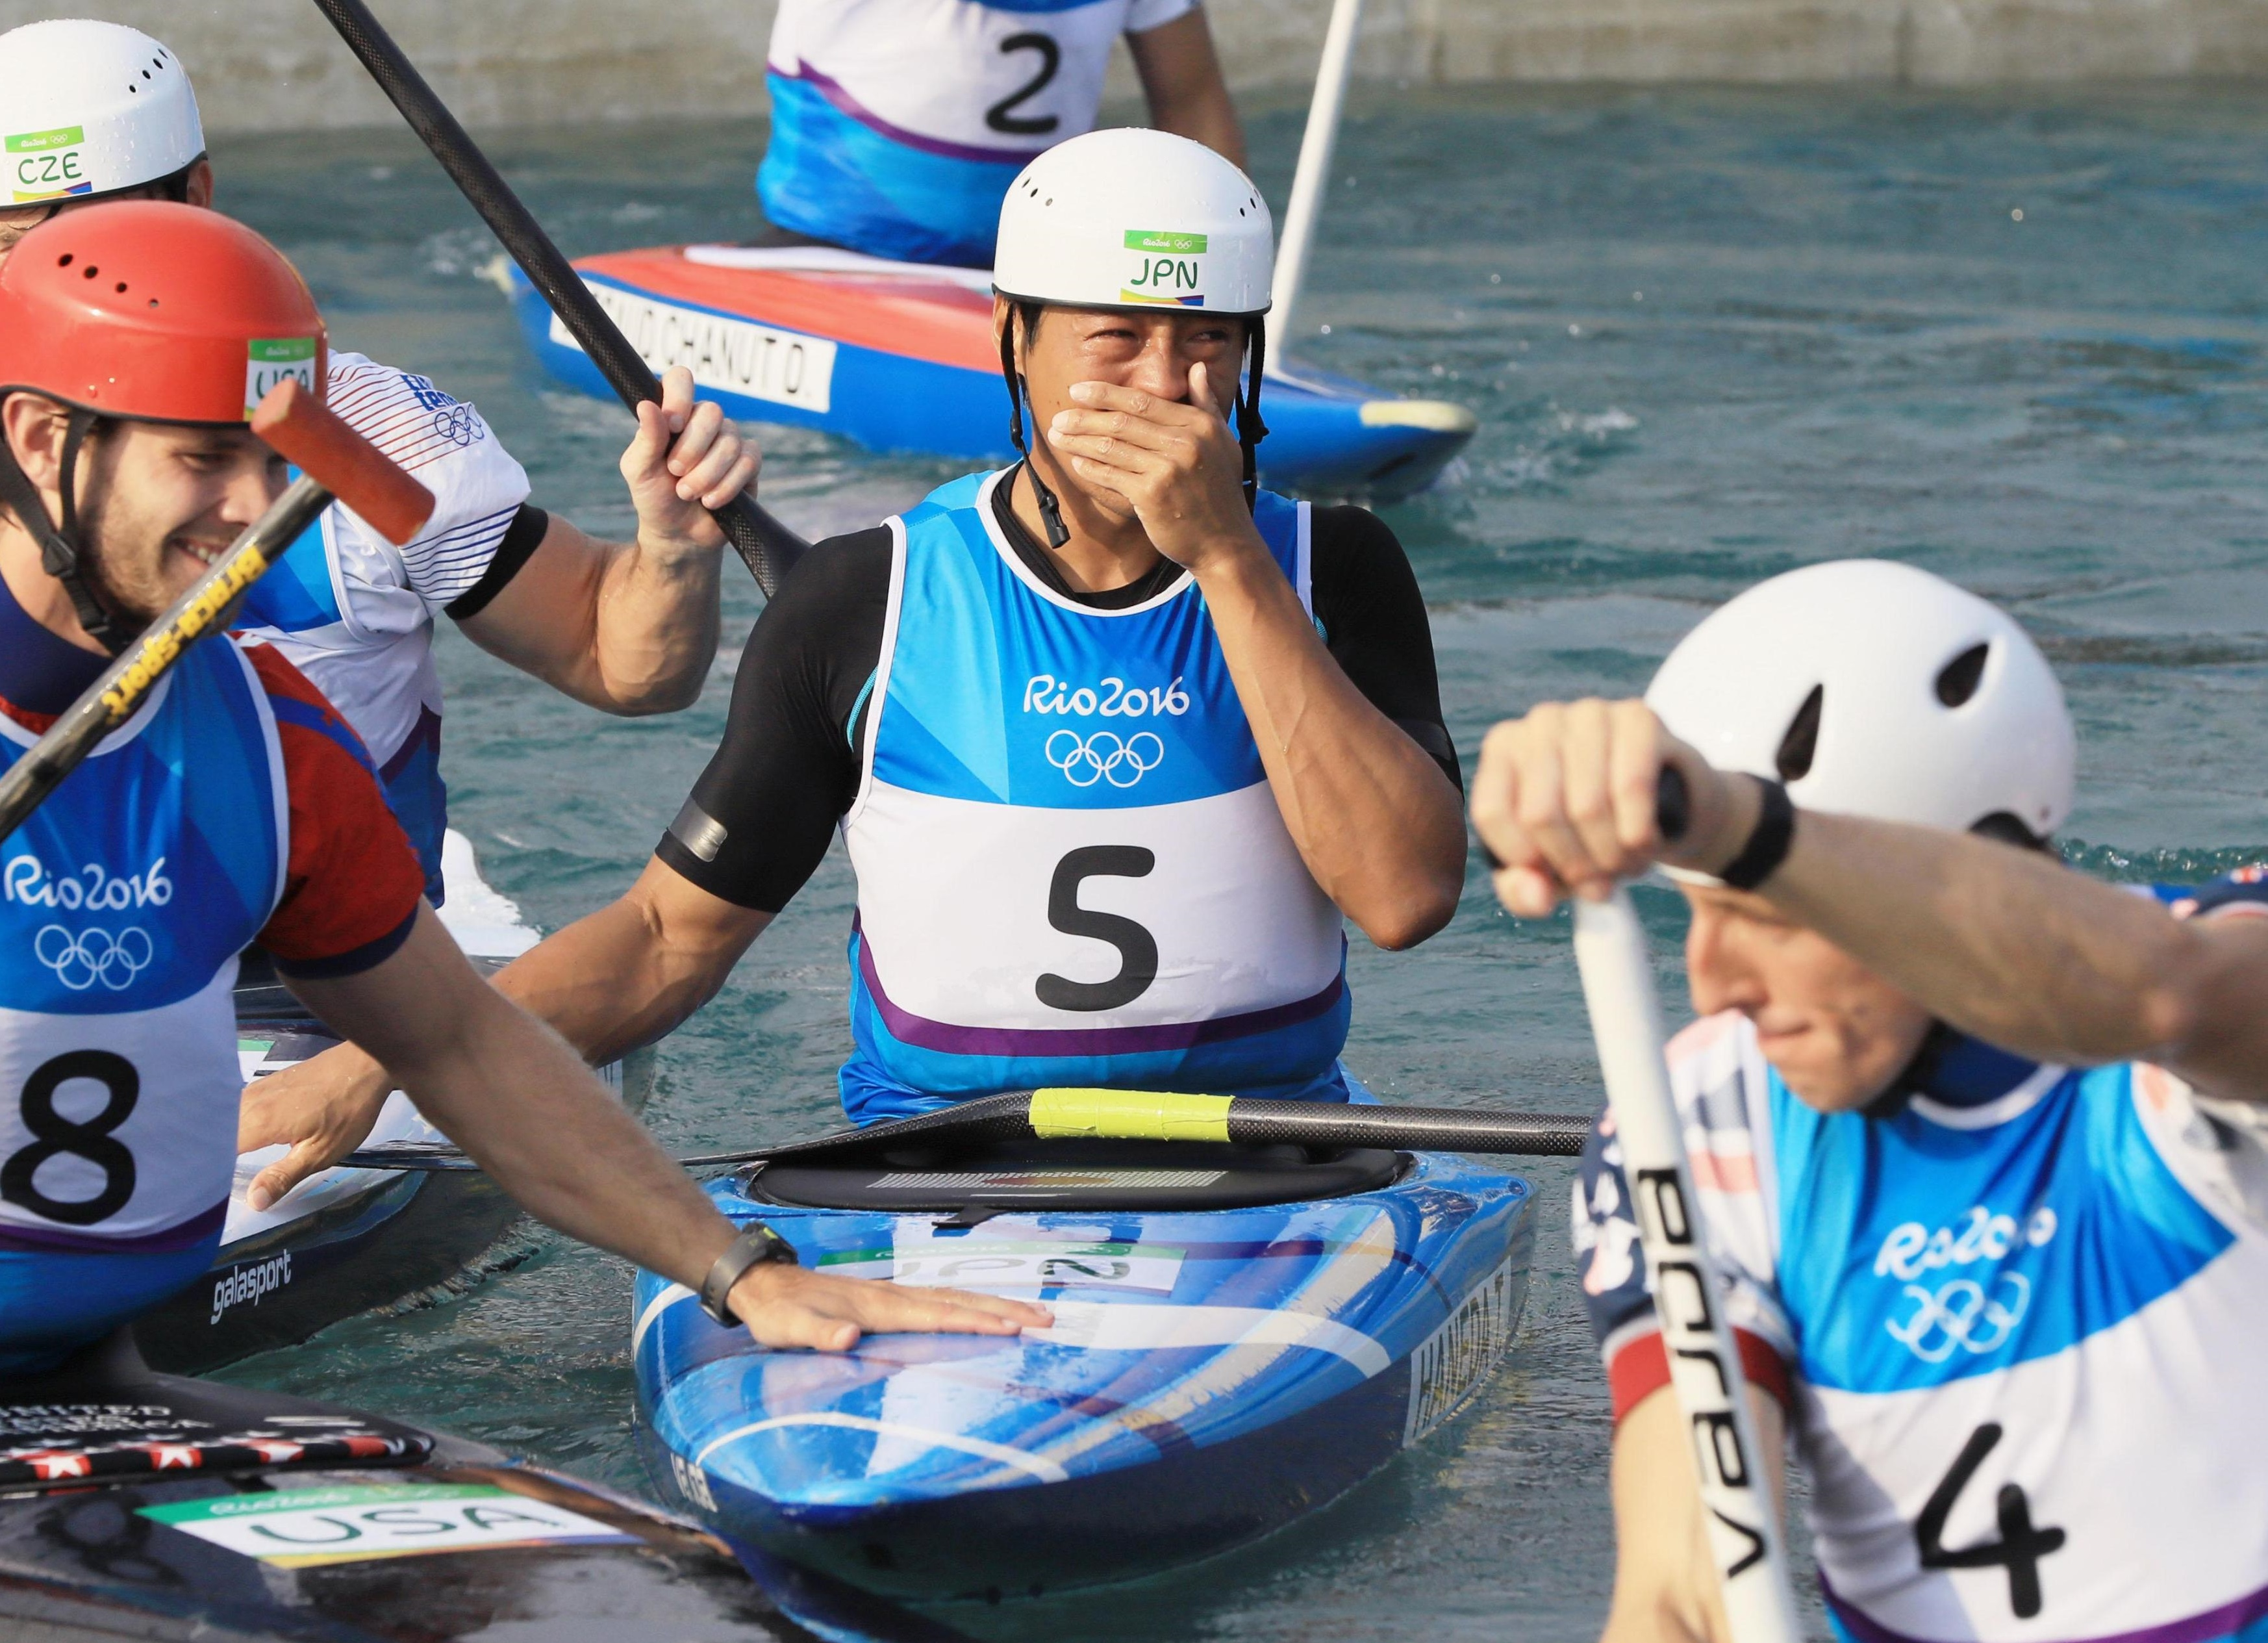 Japan's Takuya Haneda reacts after he earned the bronze medal in the men's canoe slalom at the Rio de Janeiro Olympics on Tuesday. He became the first-ever Japanese Olympic medalist in the sport. | KYODO